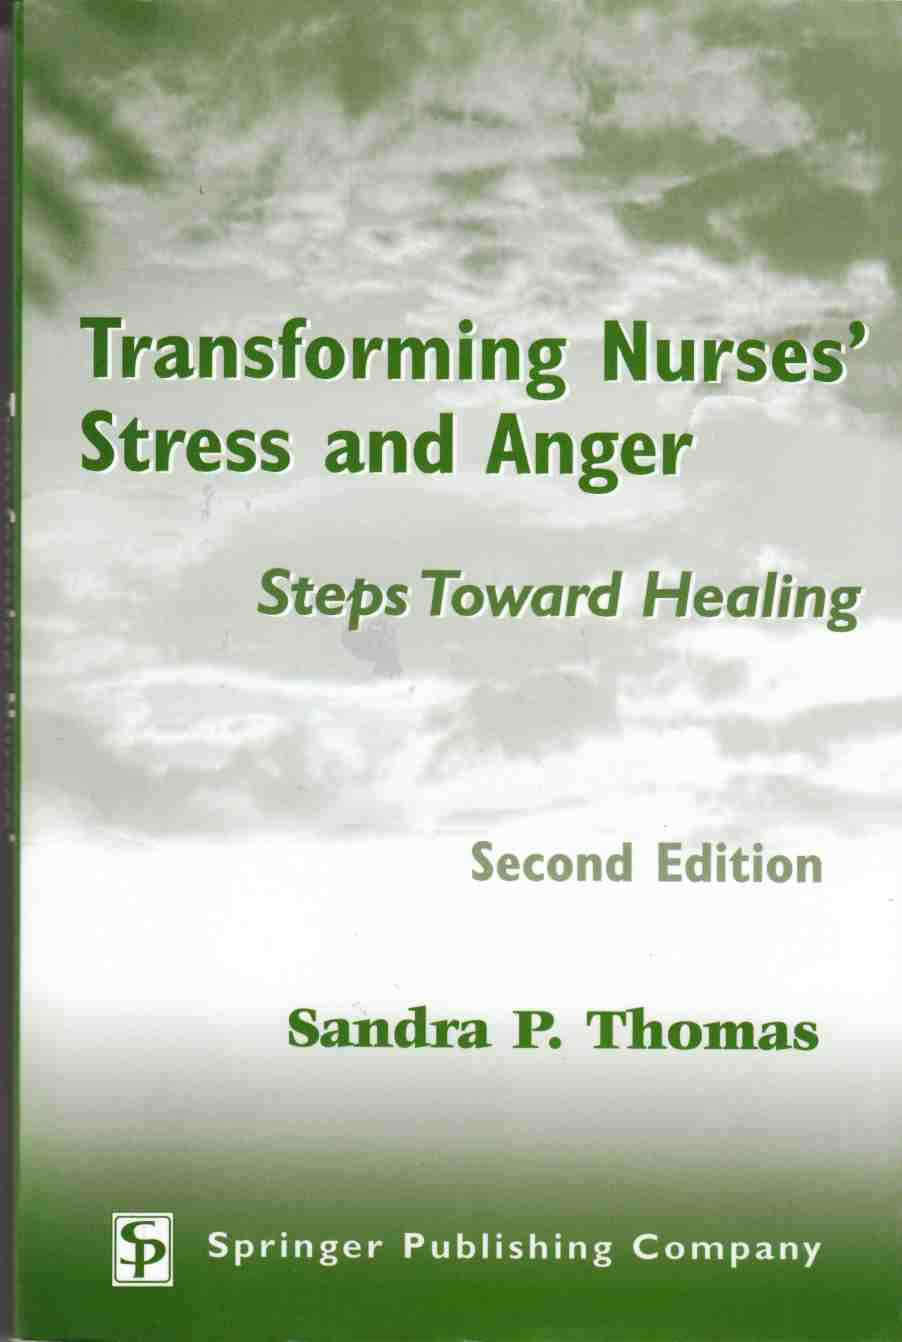 Image for Transforming Nurses' Stress and Anger Steps Toward Healing Second Edition